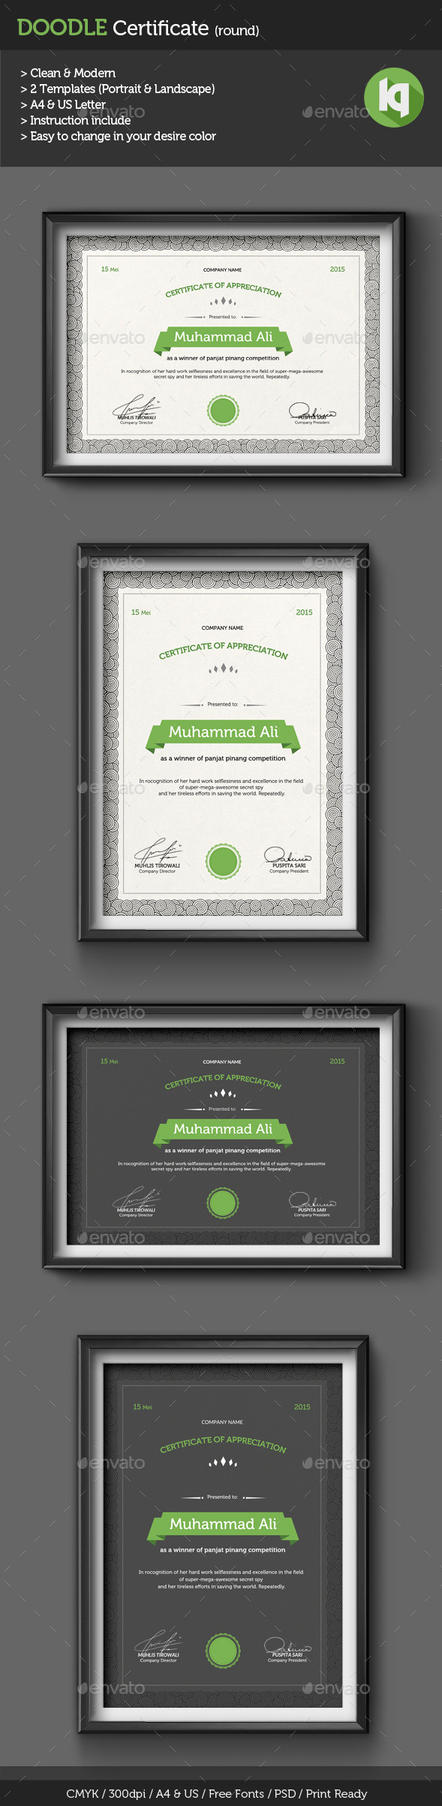 Doodle certificate template round by kholispress on deviantart doodle certificate template round by kholispress yadclub Choice Image